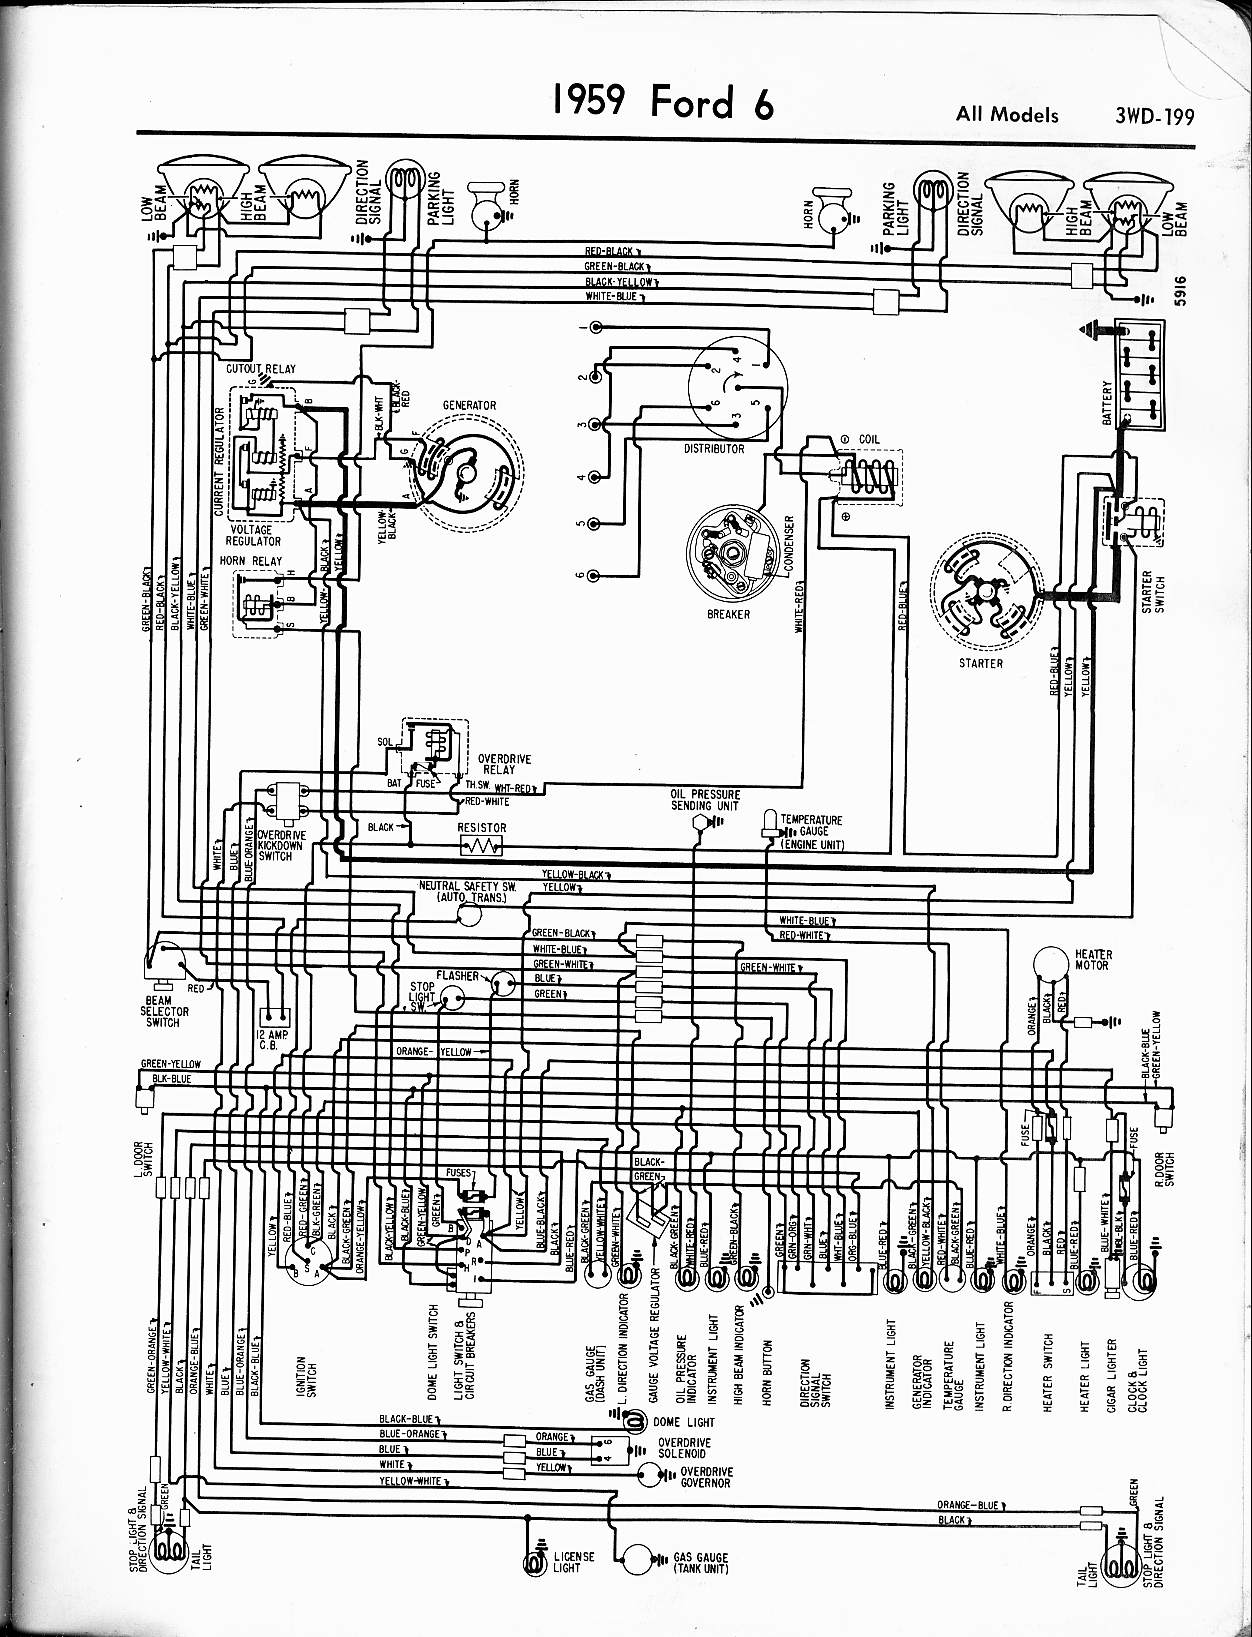 Wiring Diagrams 1968 Ford F100 6 Cyl